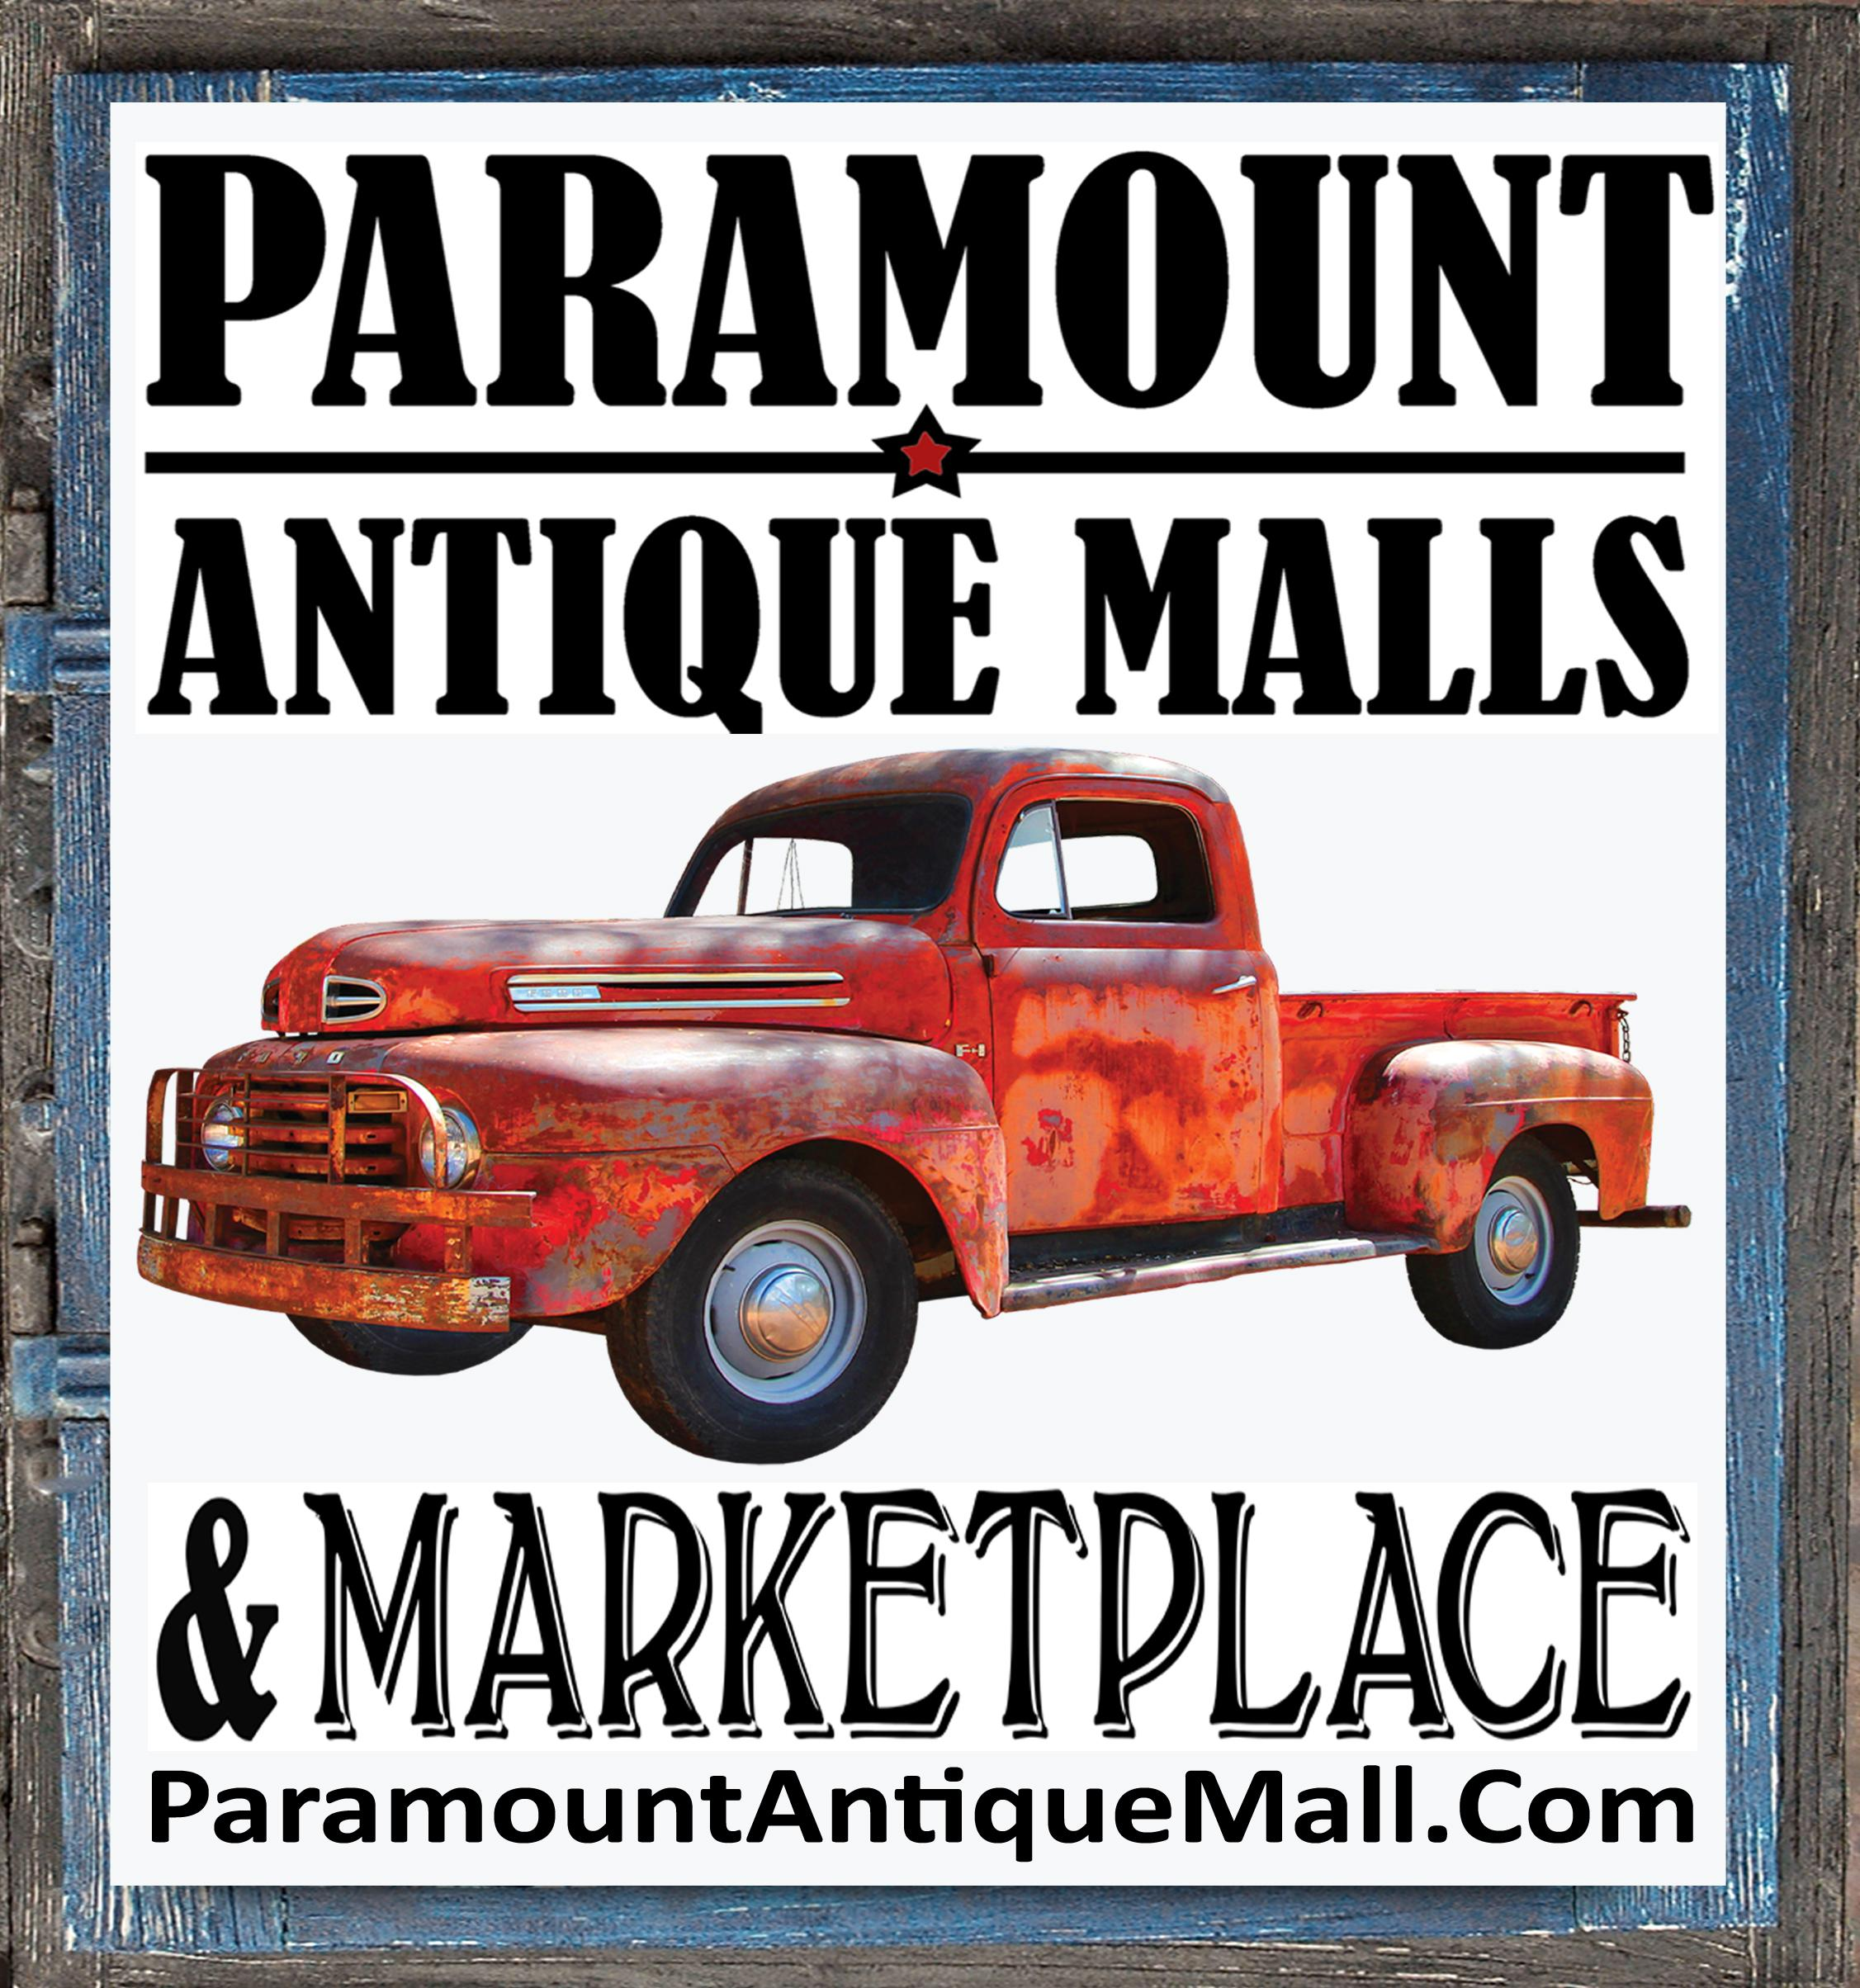 Paramount Antique Malls